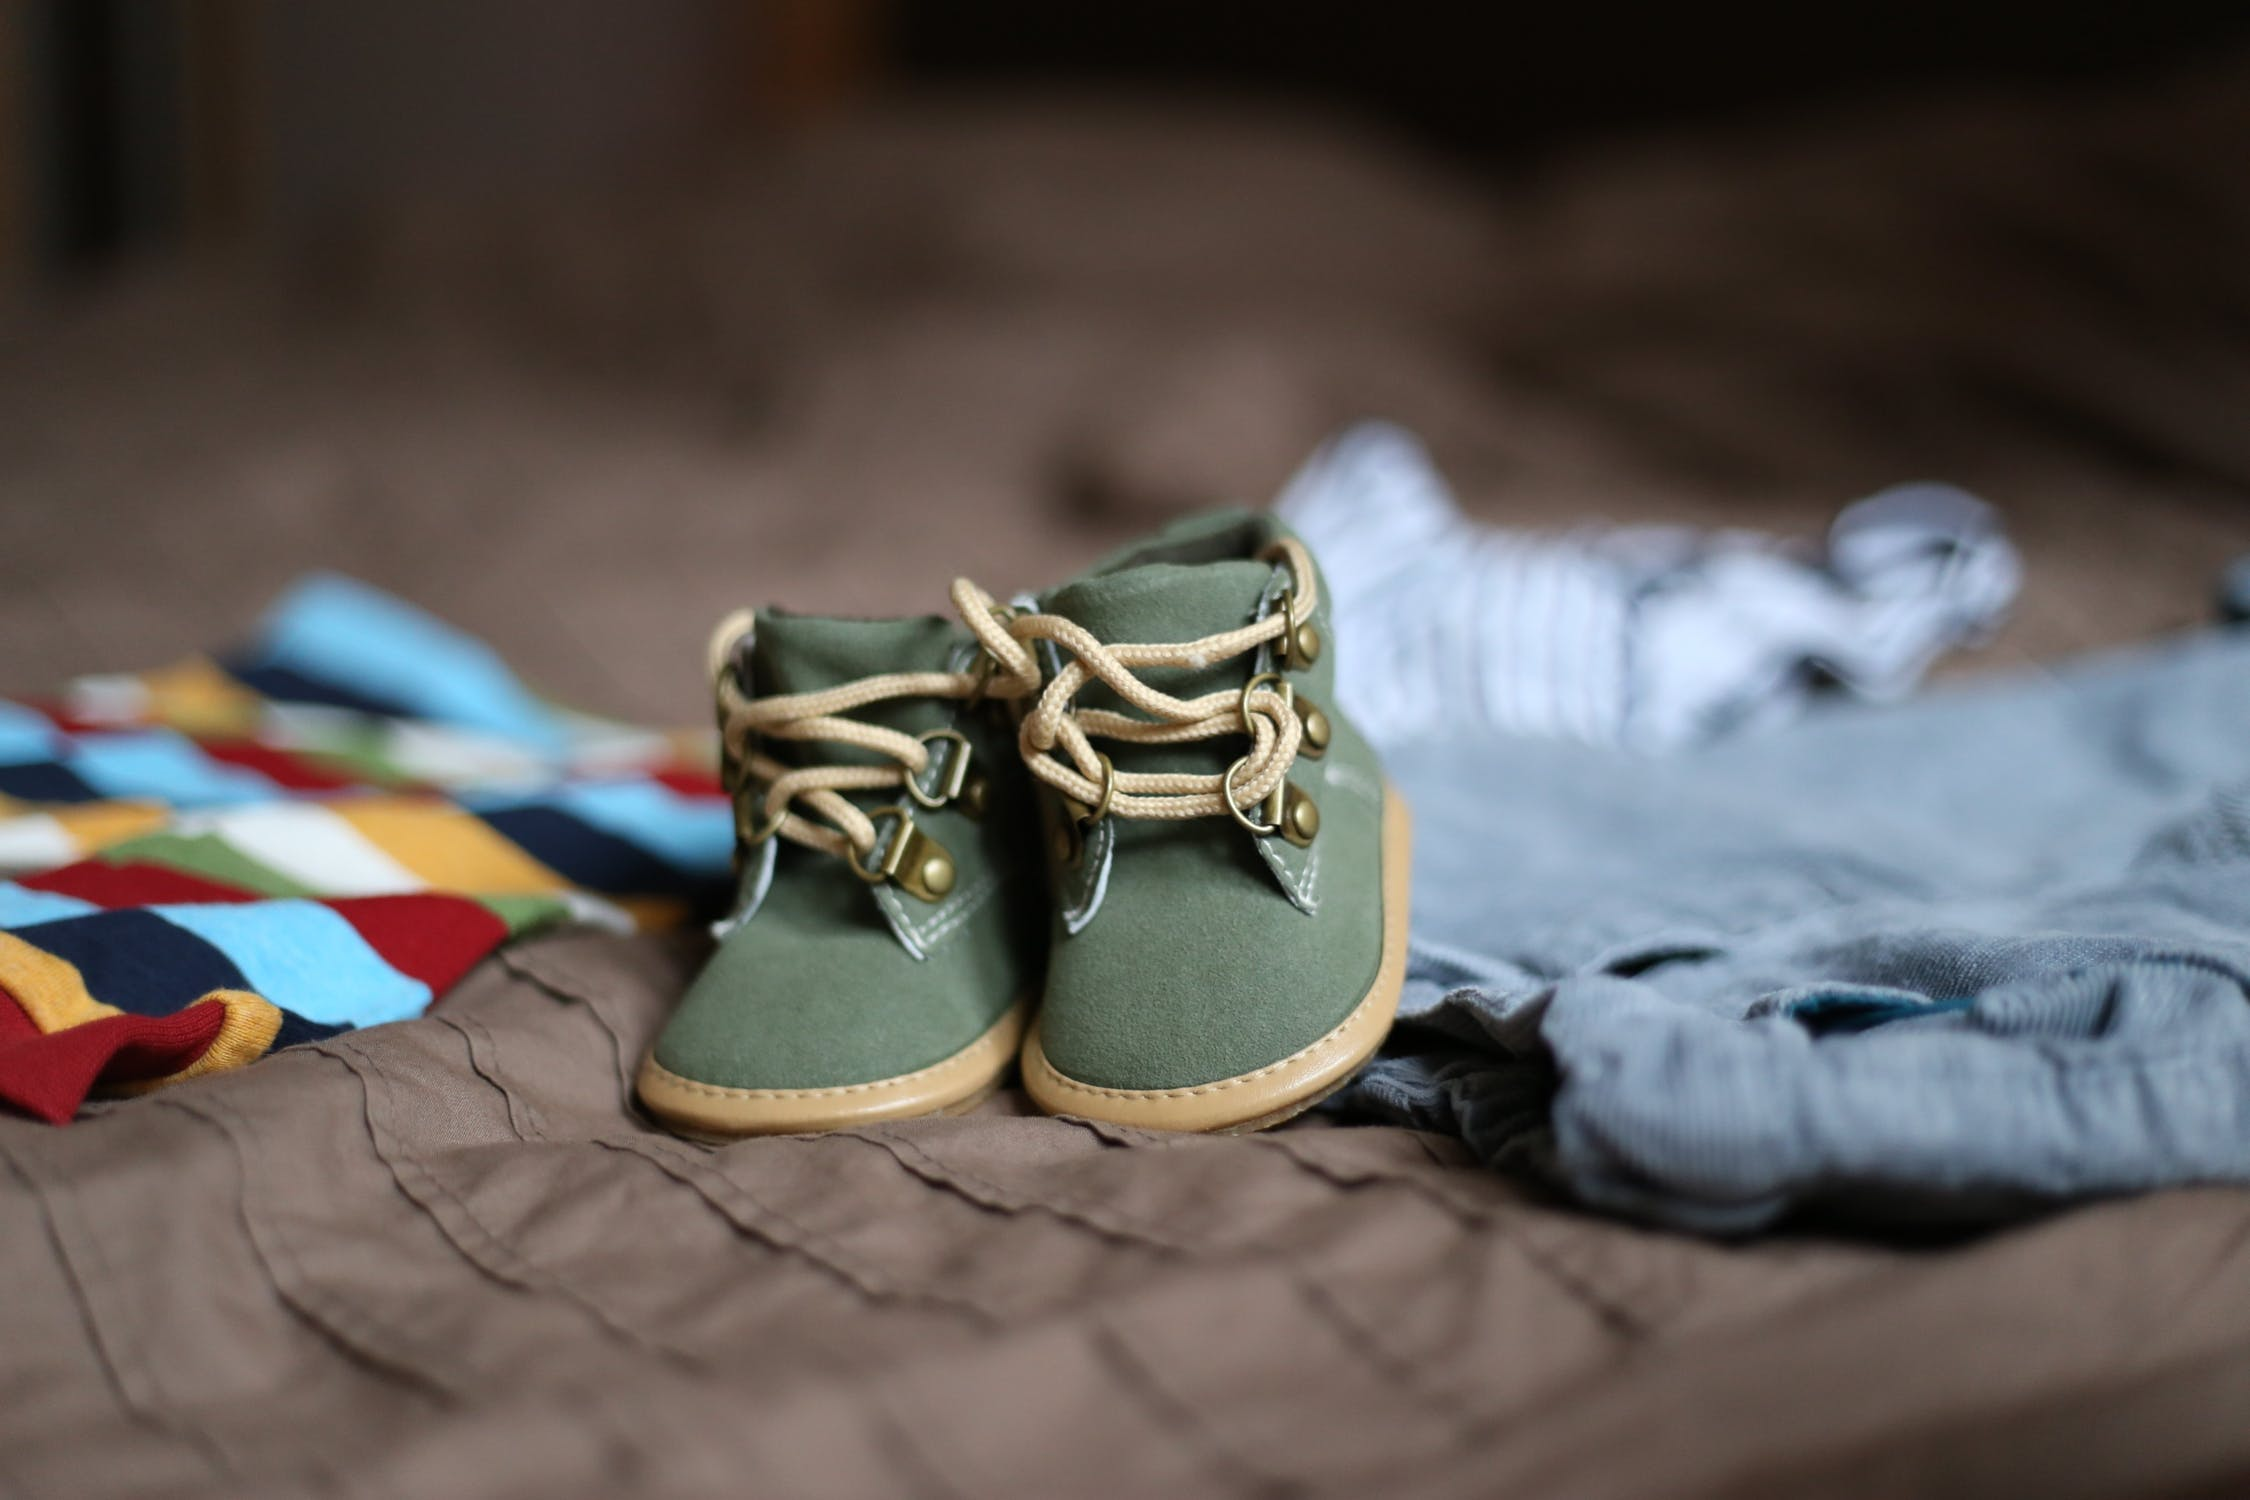 kids clothes and shoes